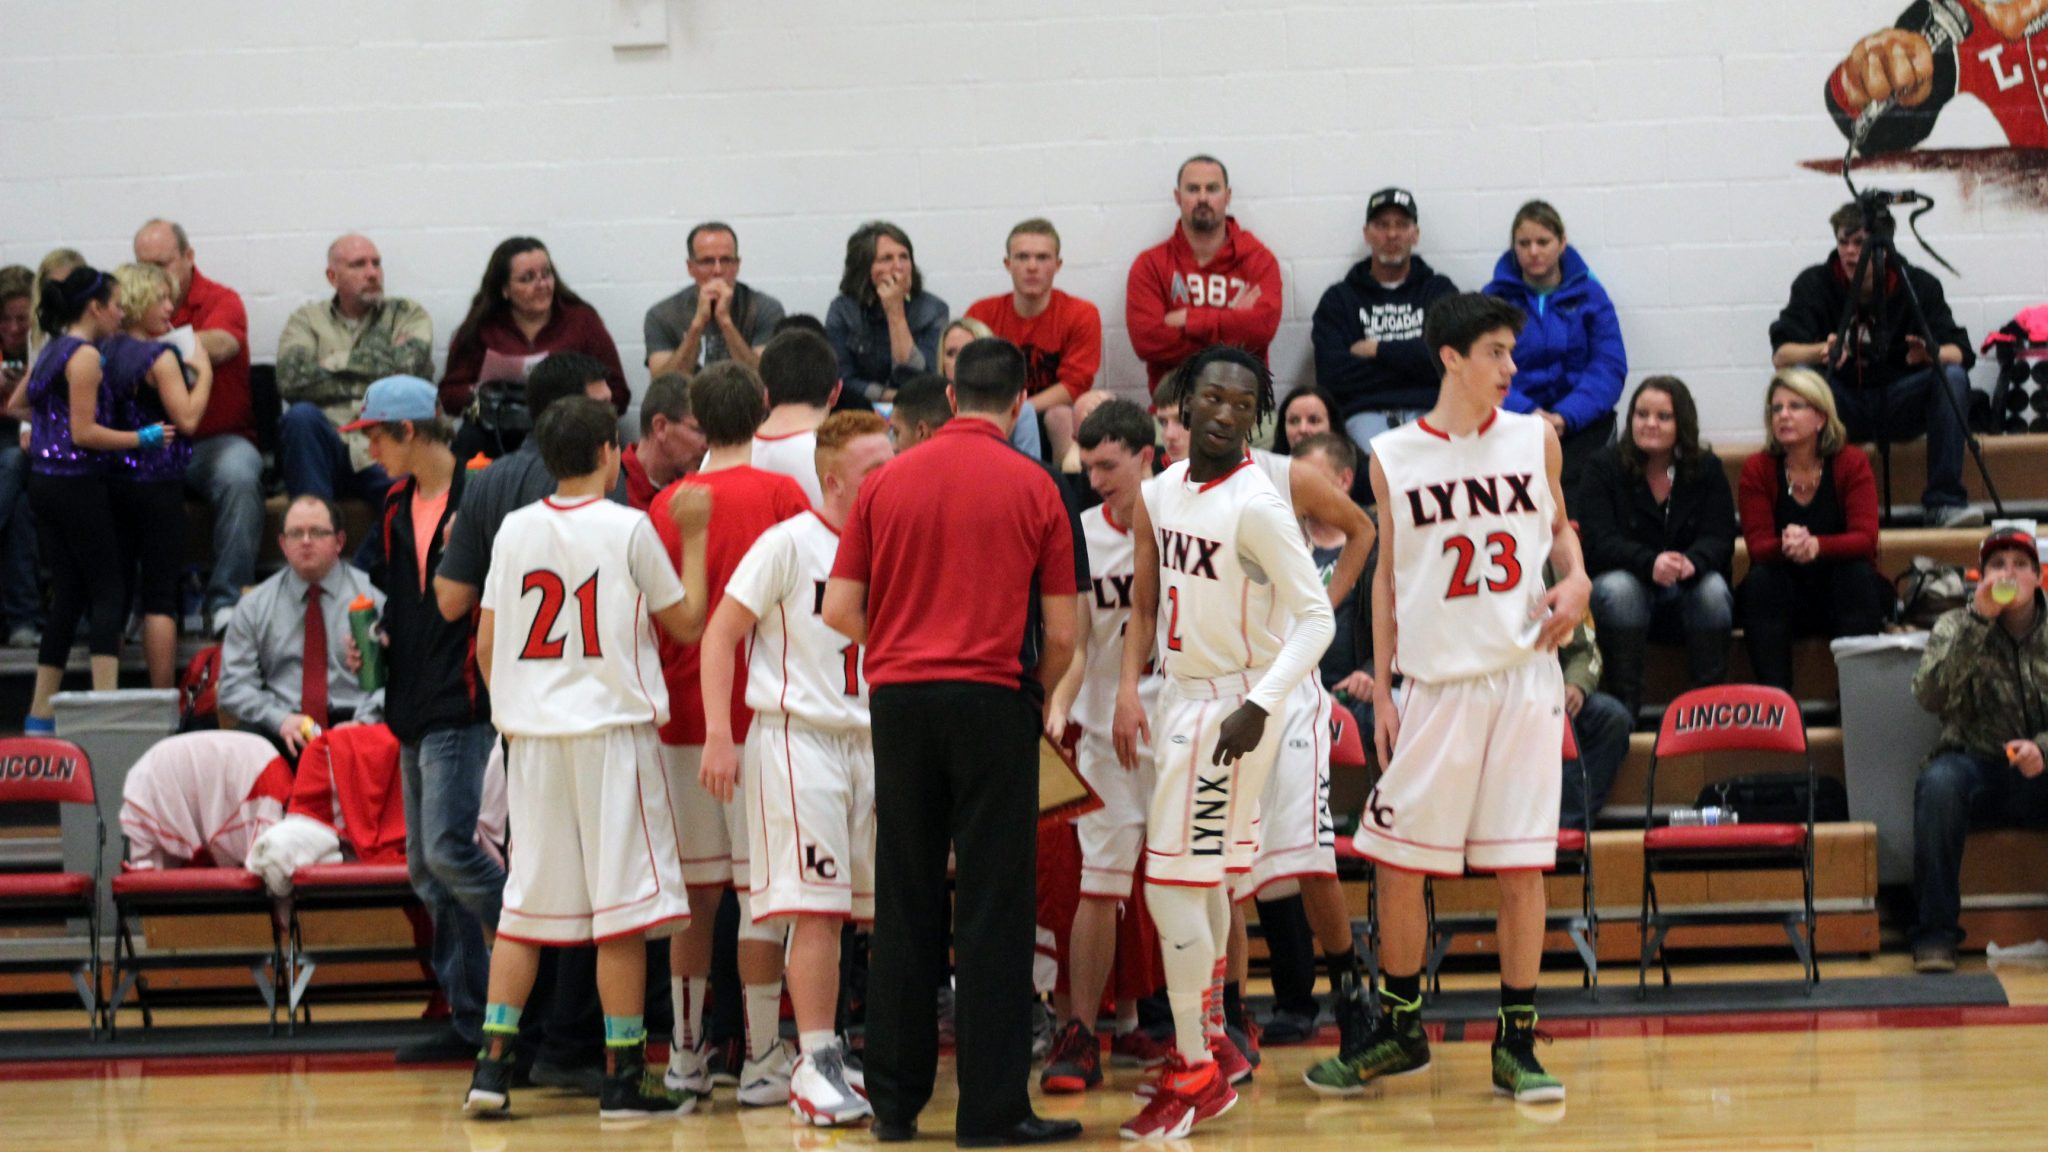 Lincoln coach seeing improvements